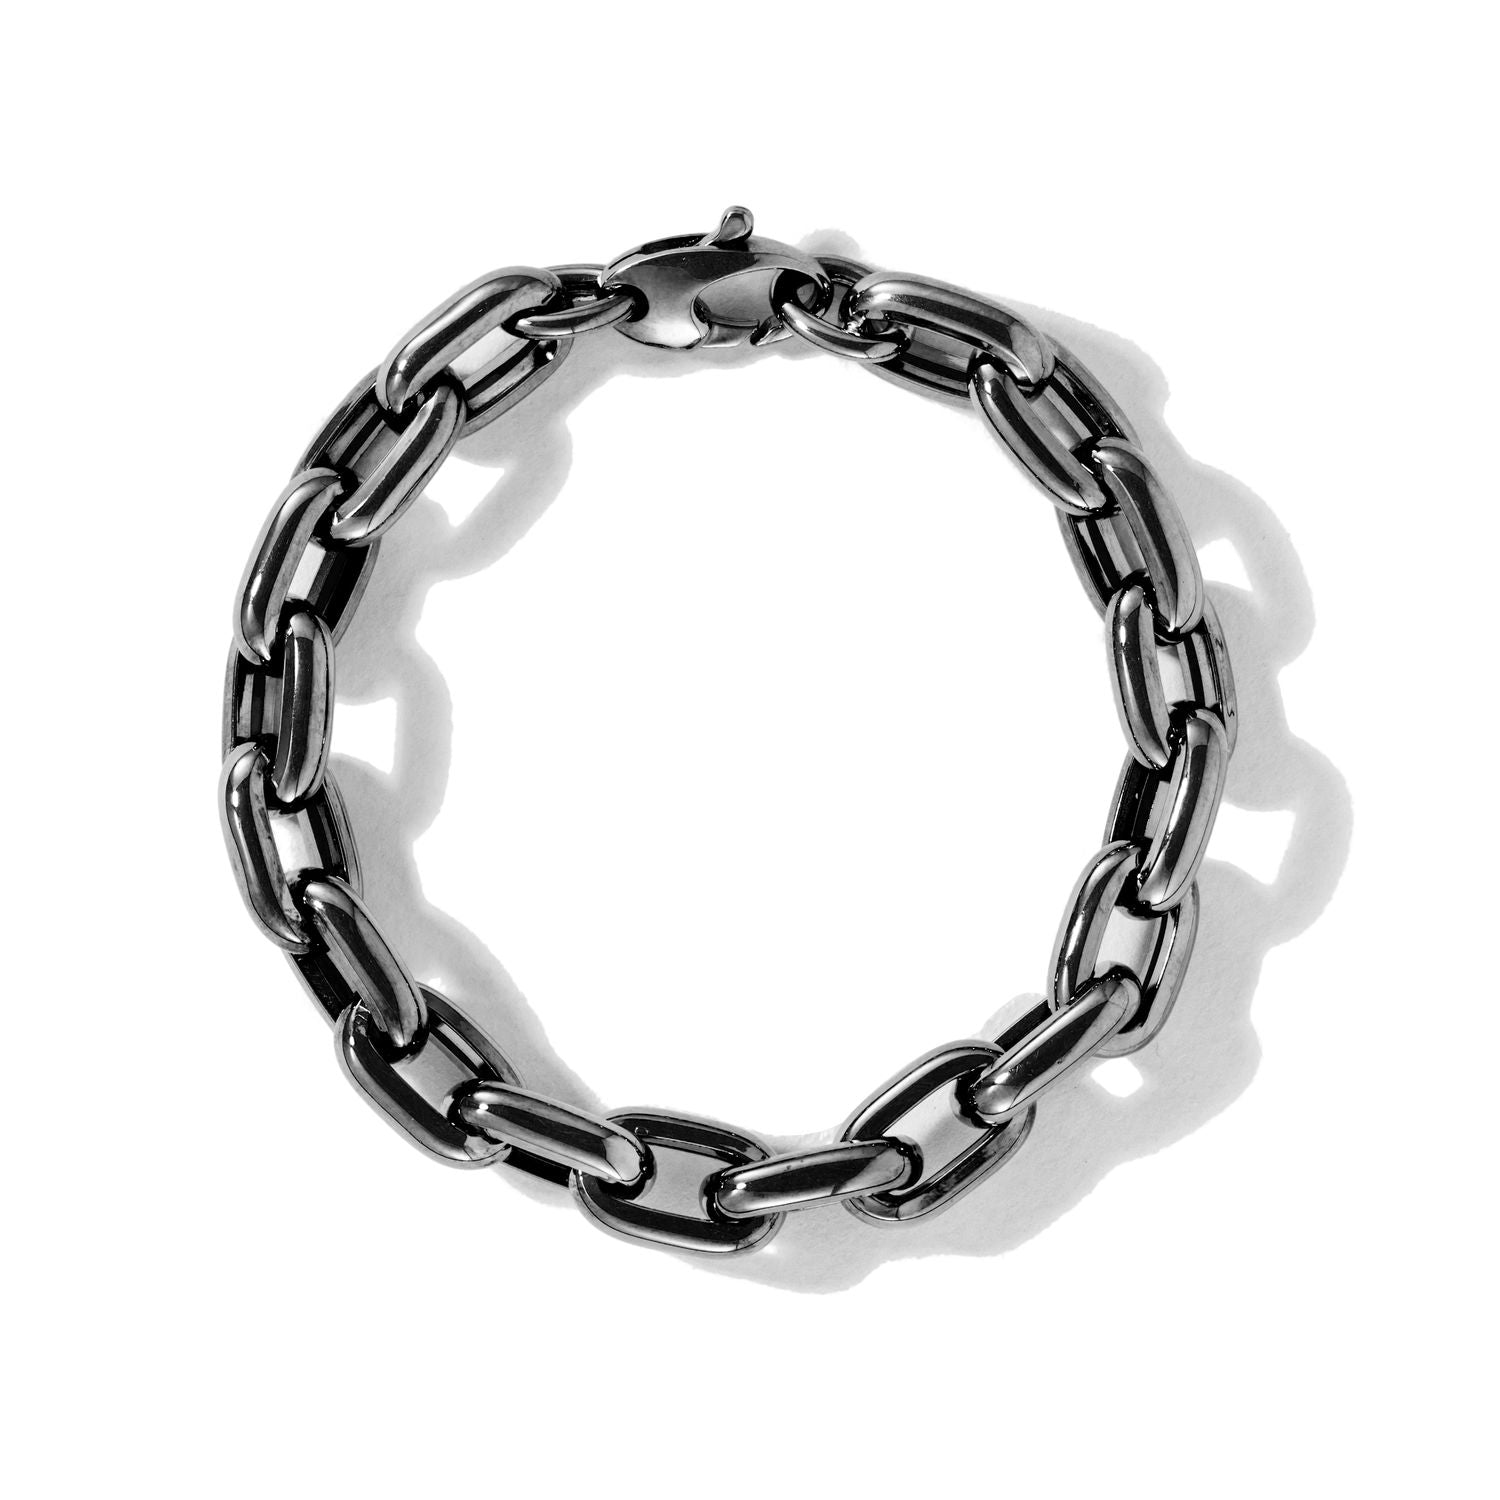 Black Oval Carabiner on Links Chain Bracelet